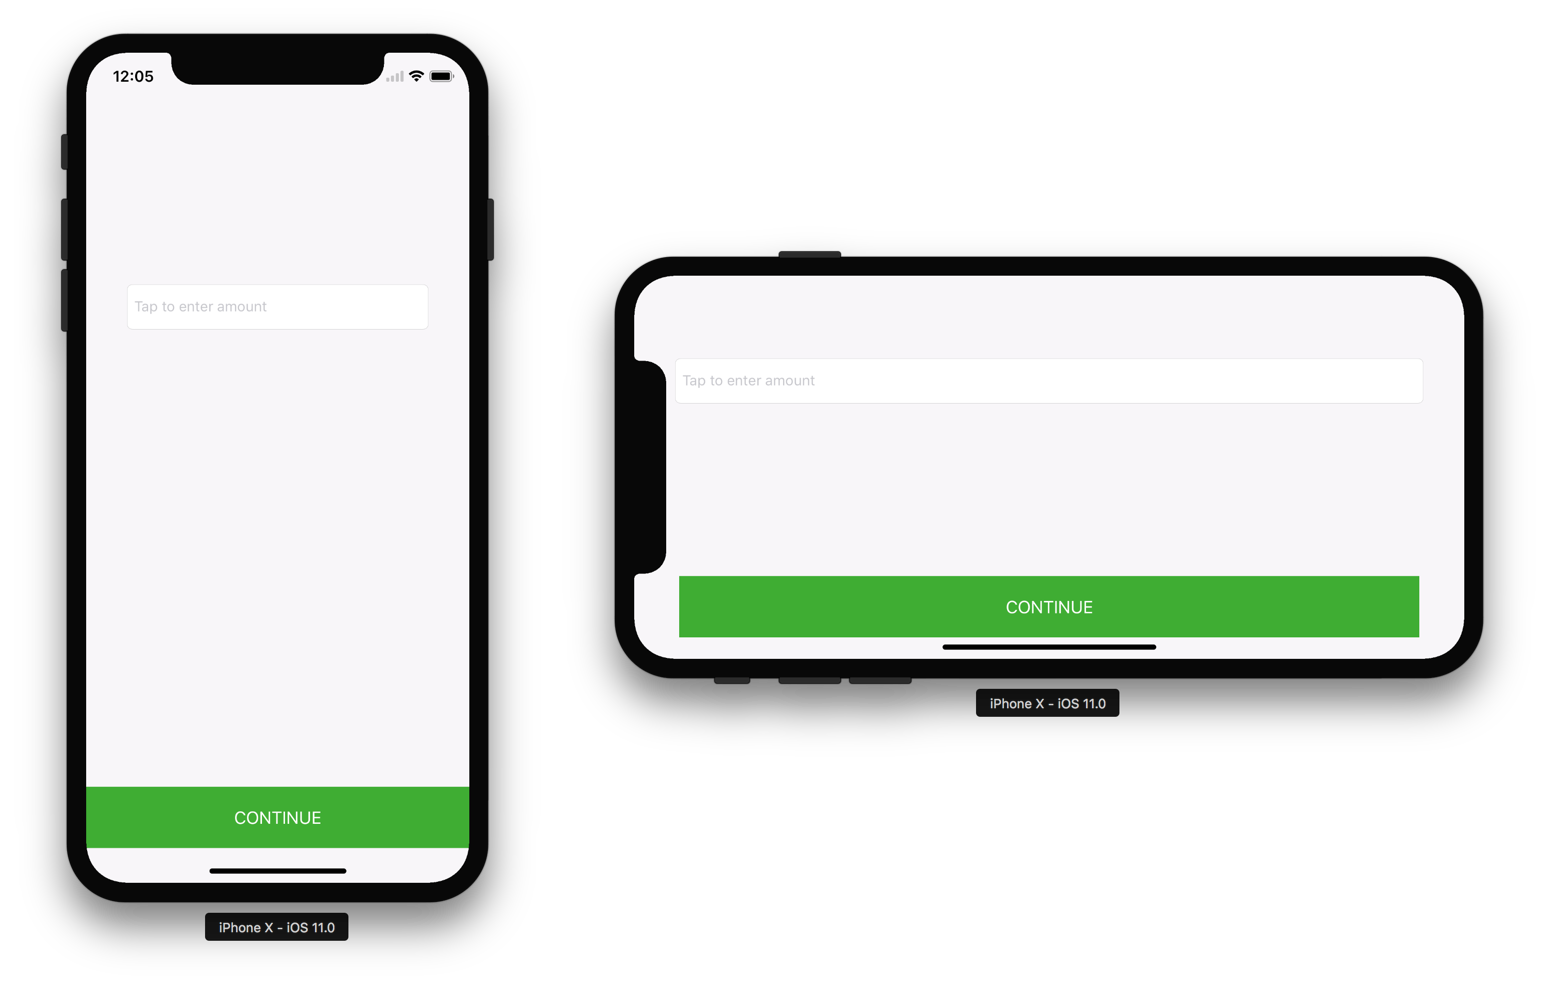 Example Project Screenshot - iPhone X